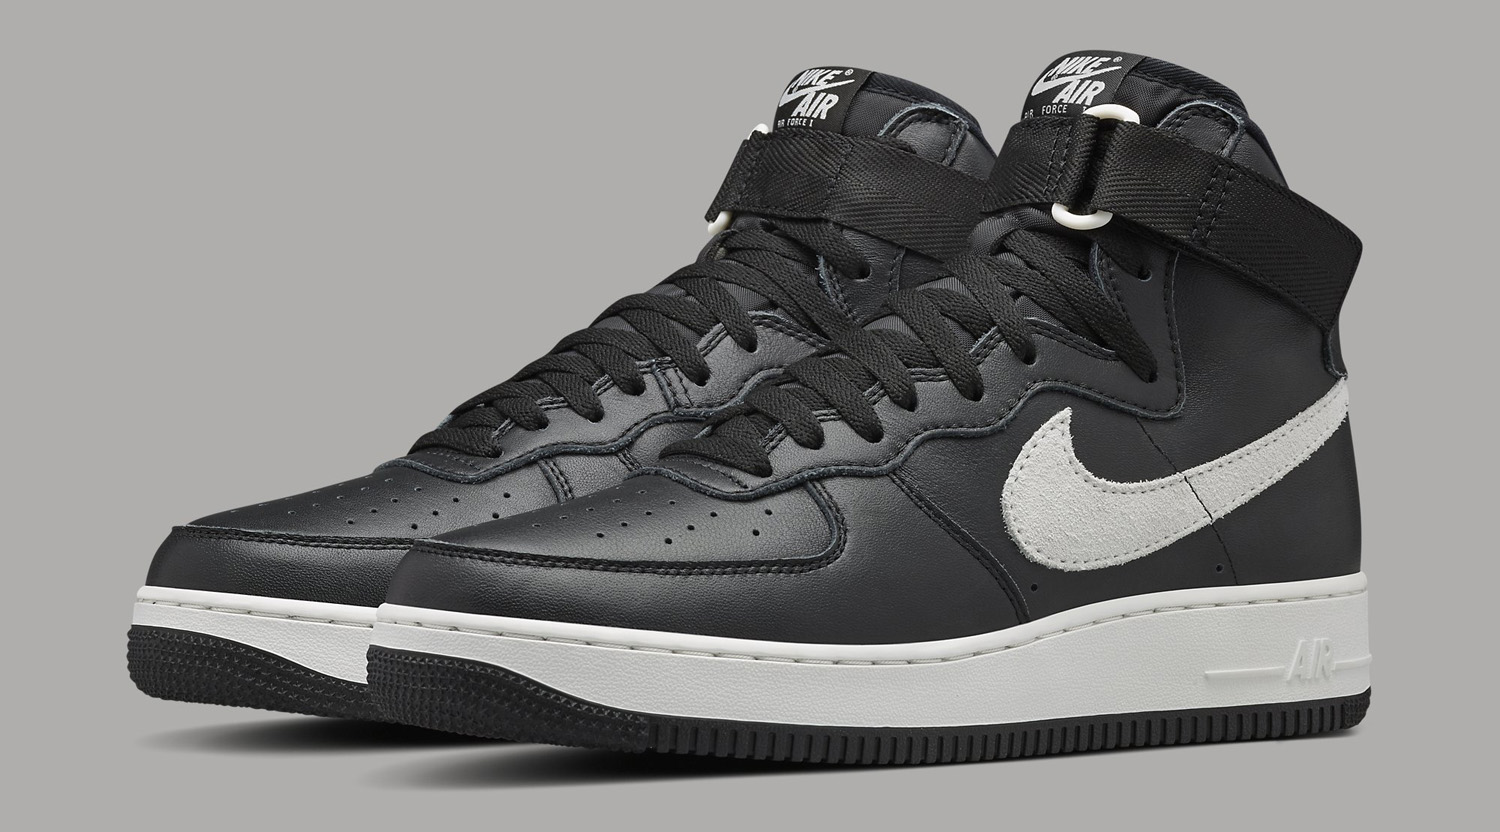 factory authentic bfeae e311b The Latest Nike SB Dunk Low Ishod Wair Is Inspired By 'BMW ...